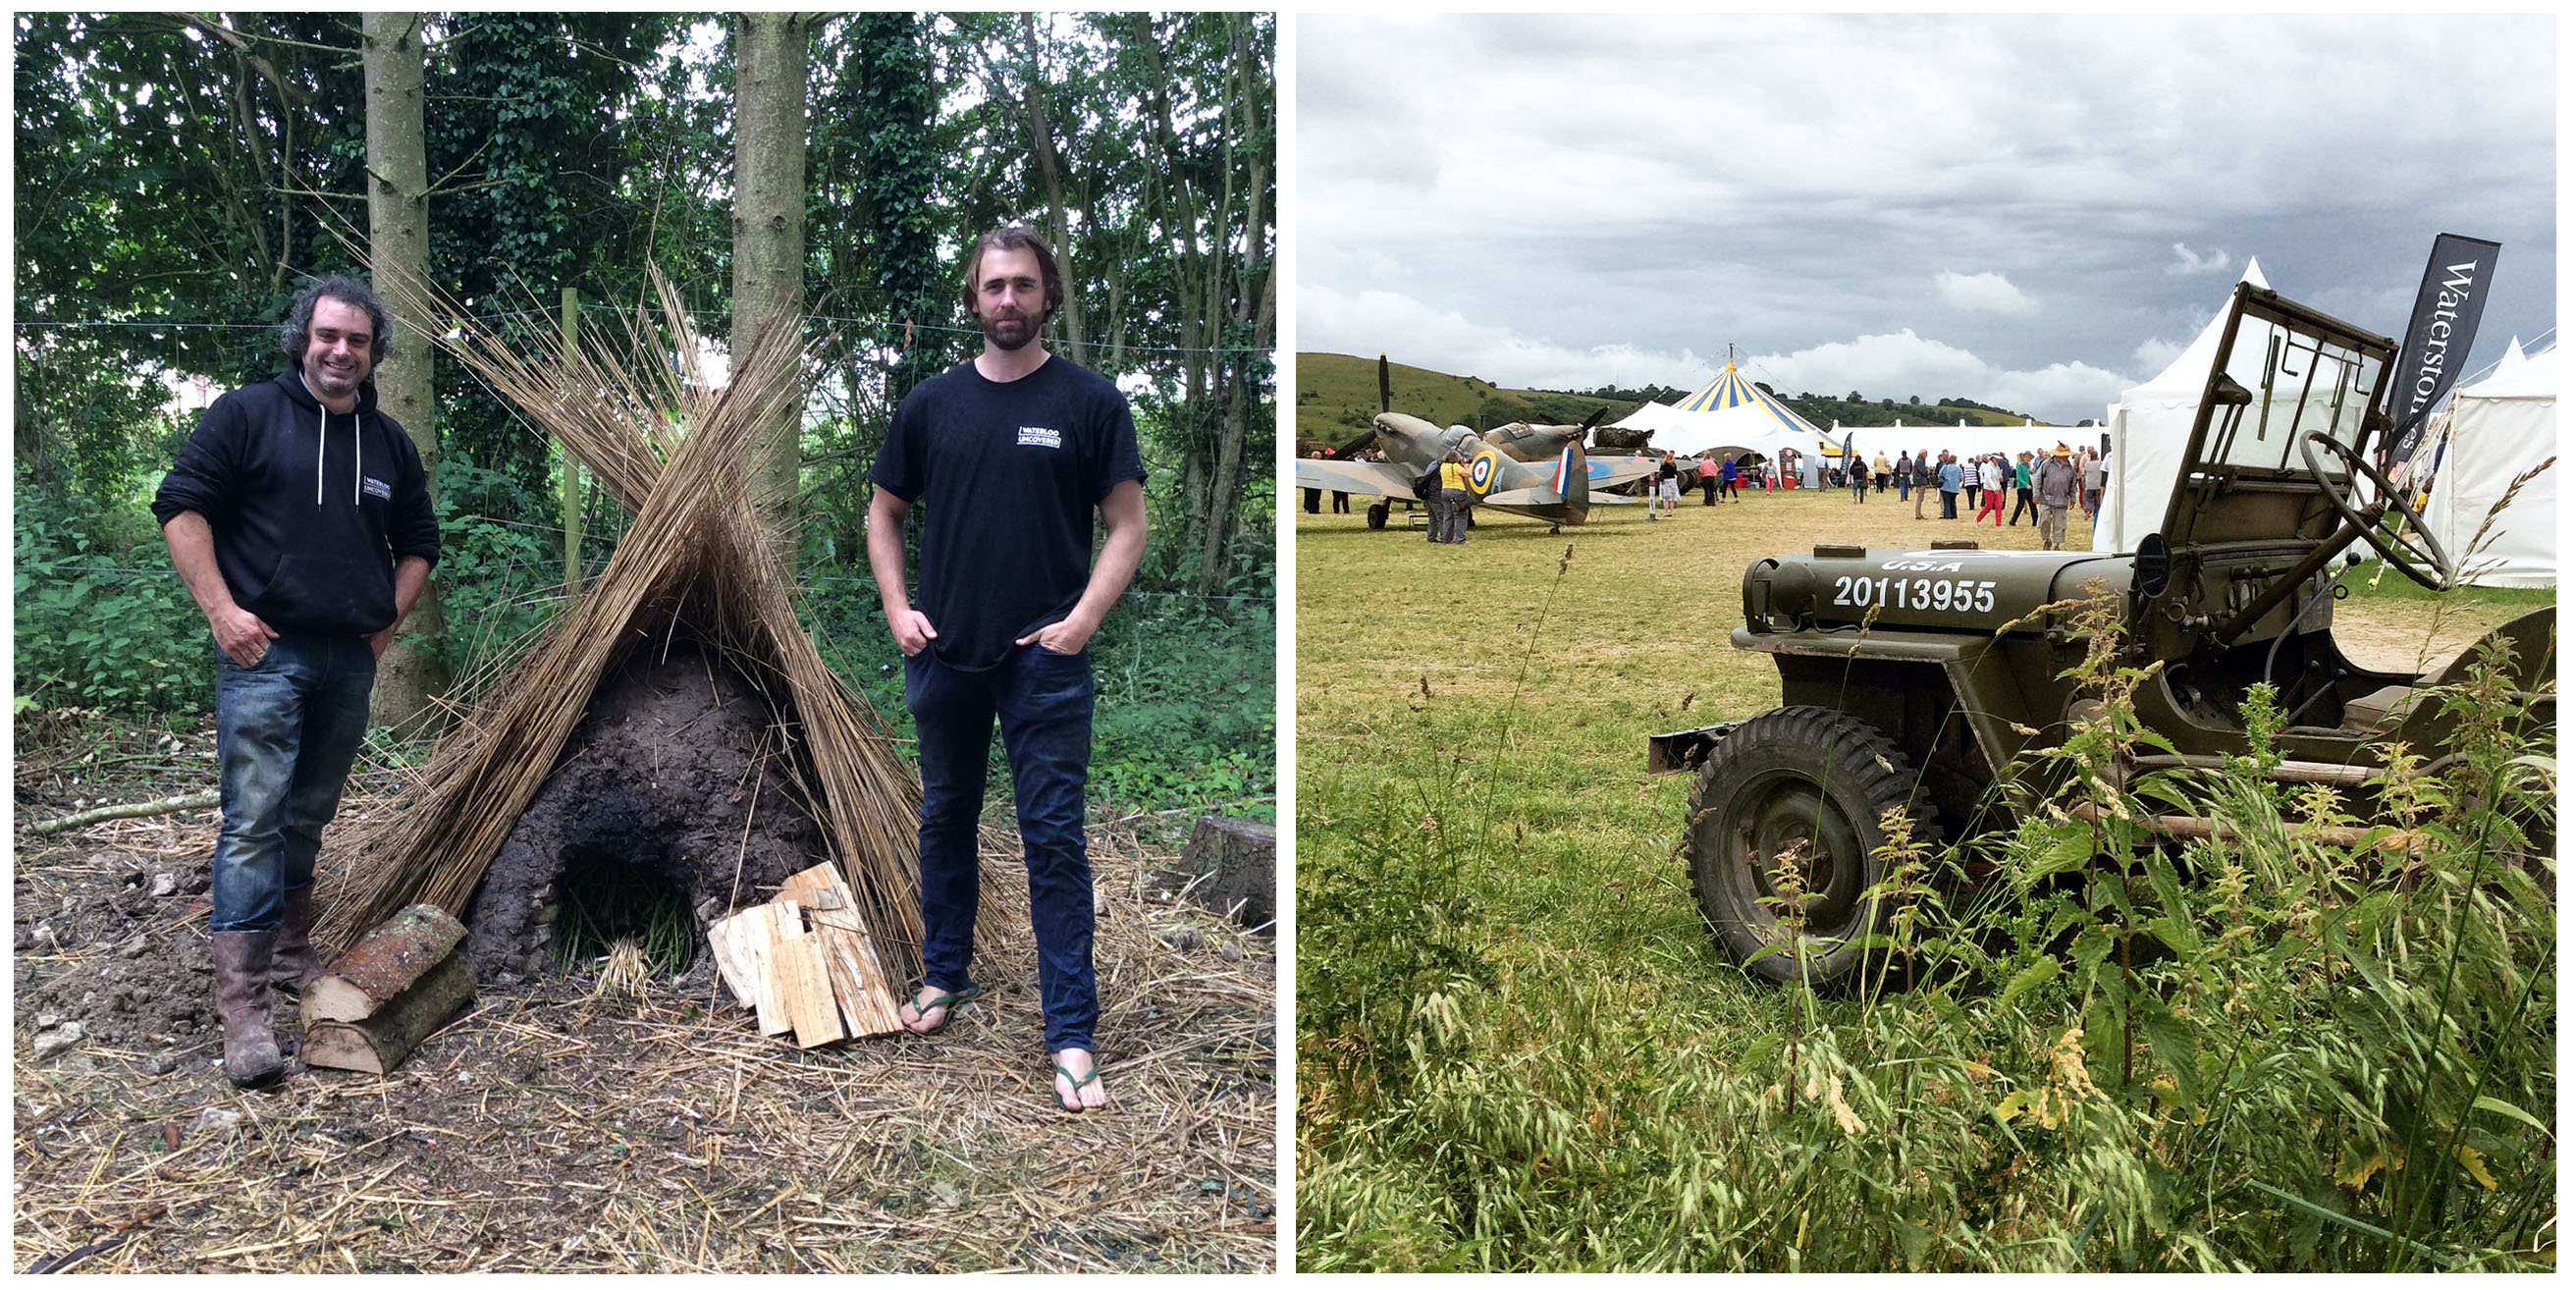 Mark Evans & Peter Ginn With Their Bread Oven  Built Over The Course Of The